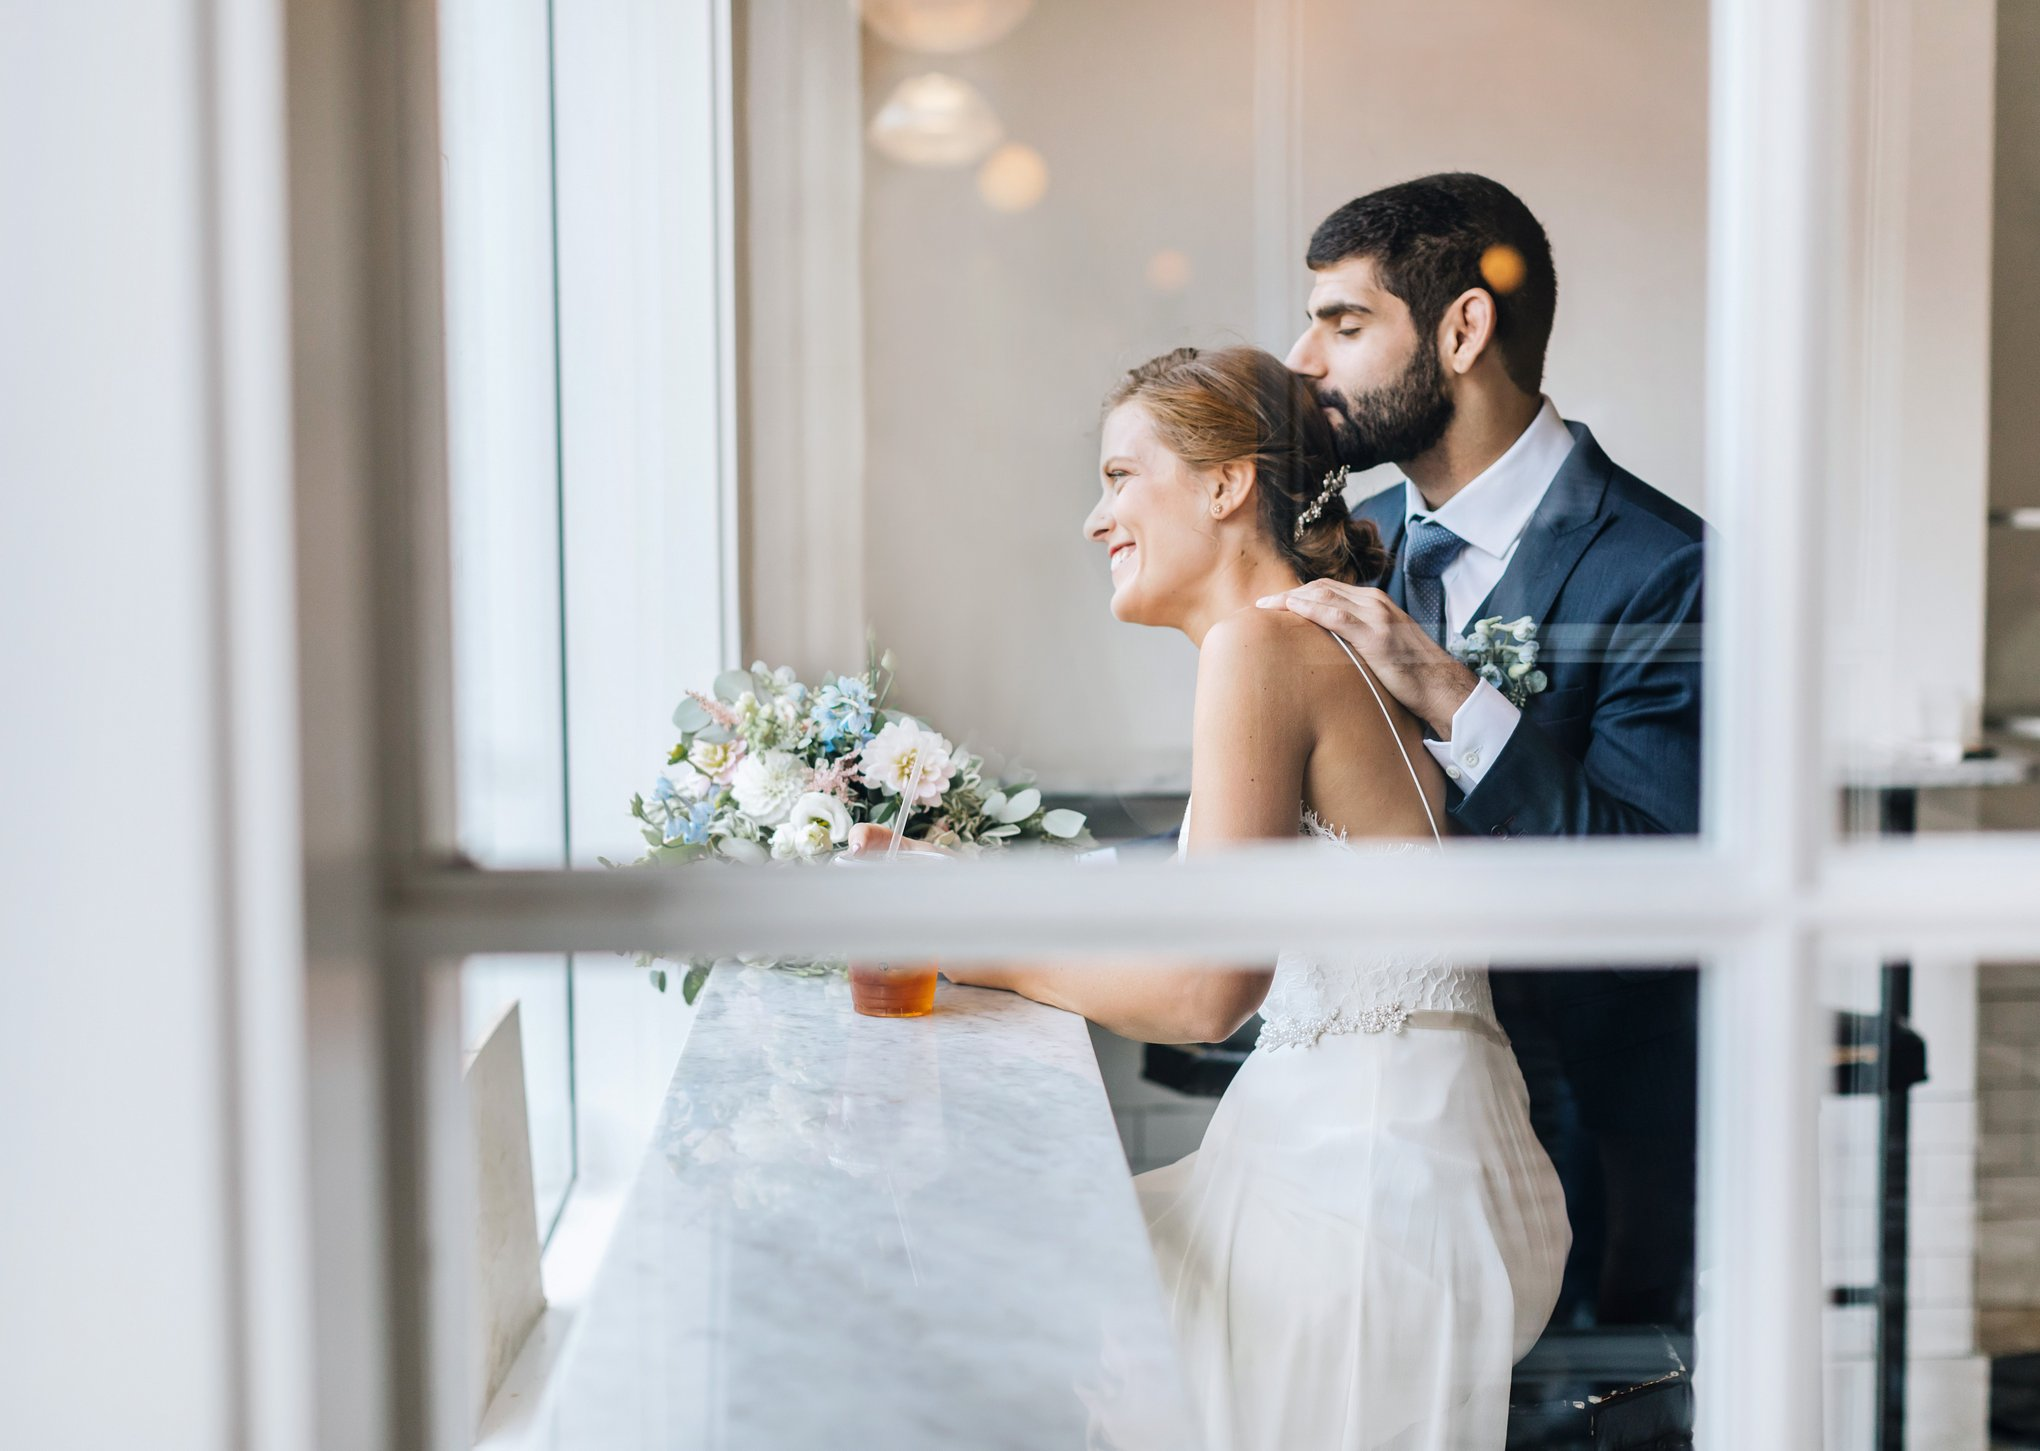 Cambridge_Puritan_Co_Wedding_Photographer_Harvard_20.jpg